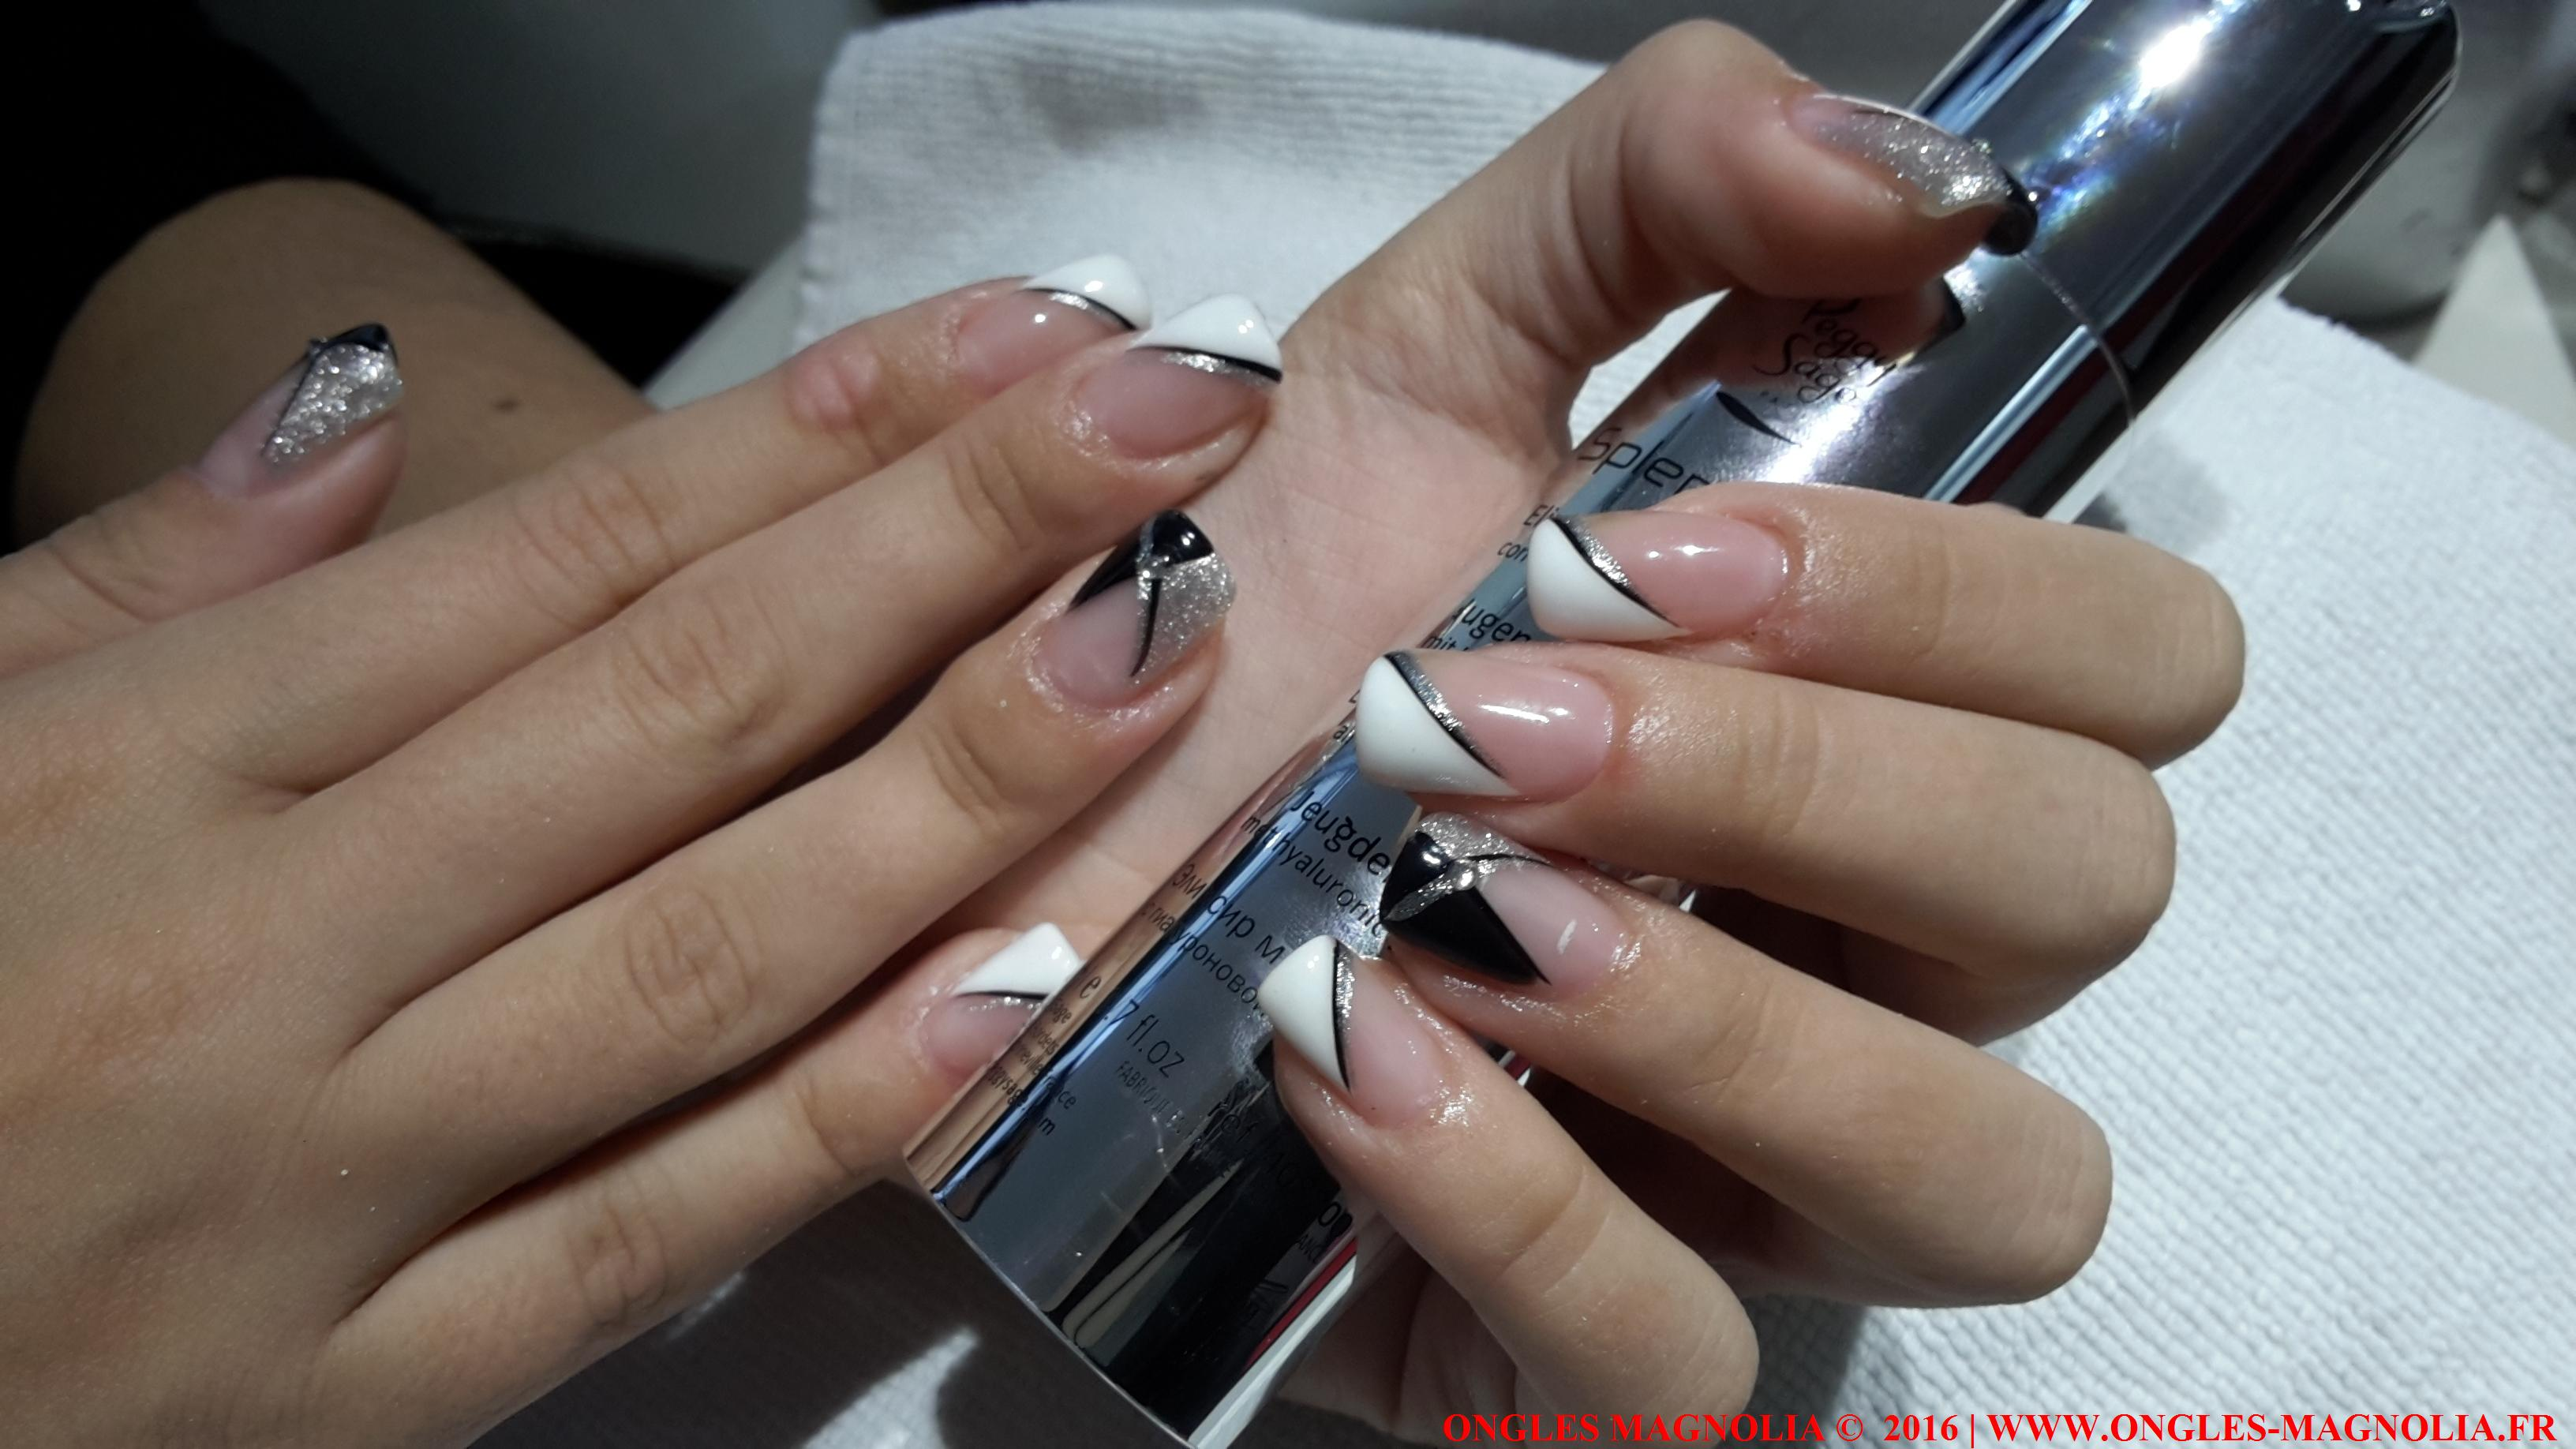 Pose-ongles-nail-art-neuville-sur-saone-lyon-ongles magnolia 112016